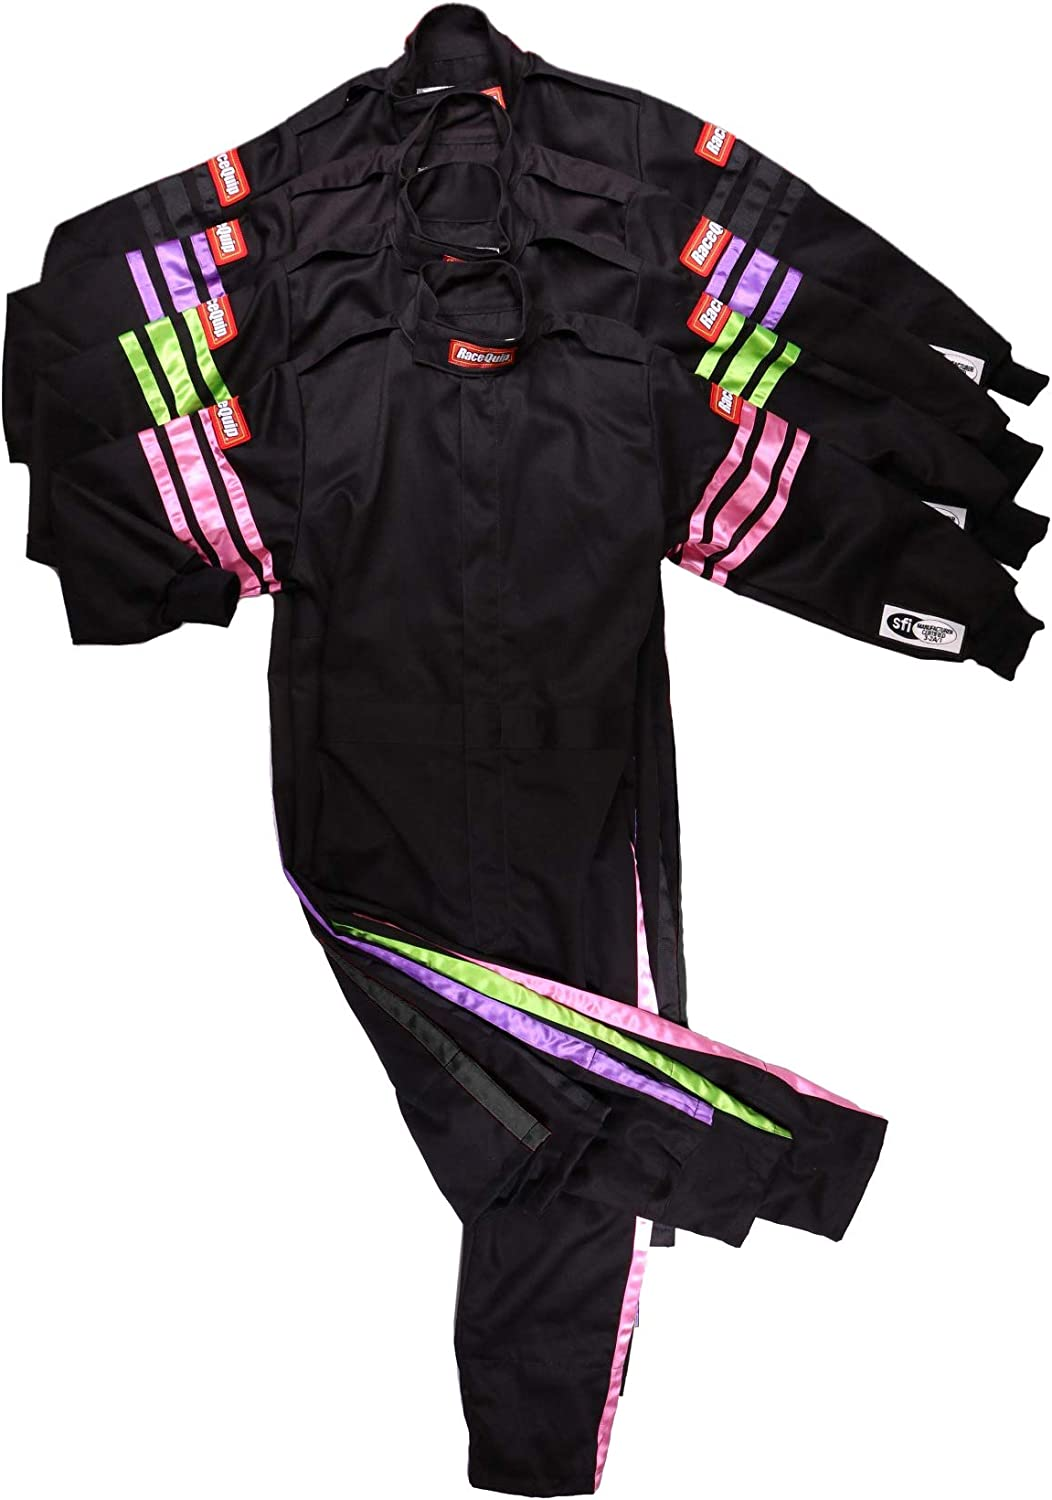 RaceQuip Racing Driver Fire Suit One Piece Single Layer SFI 3.2A// 1 Black Junior XX-Small 1959990